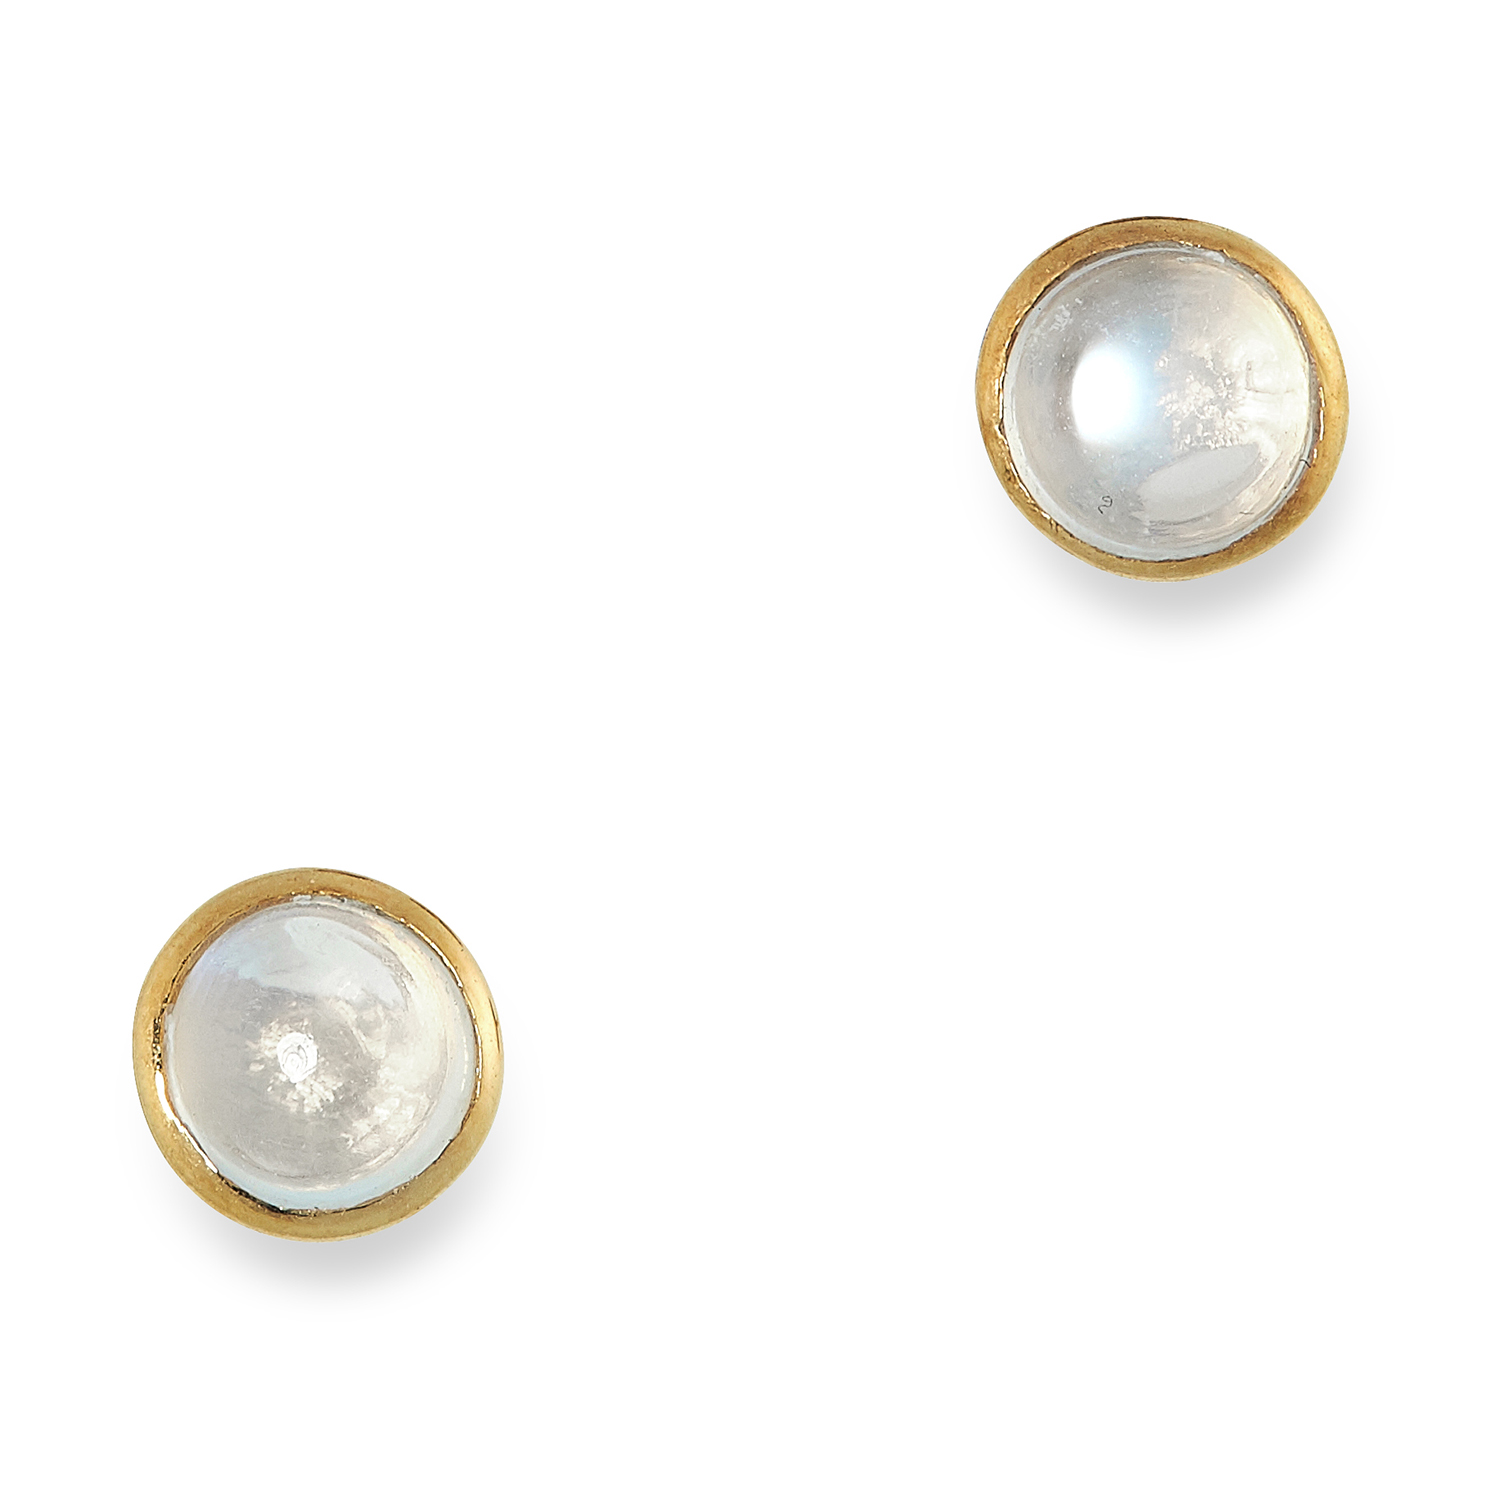 MOONSTONE STUD EARRINGS set with cabochon moonstones, 0.6cm, 1.2g.